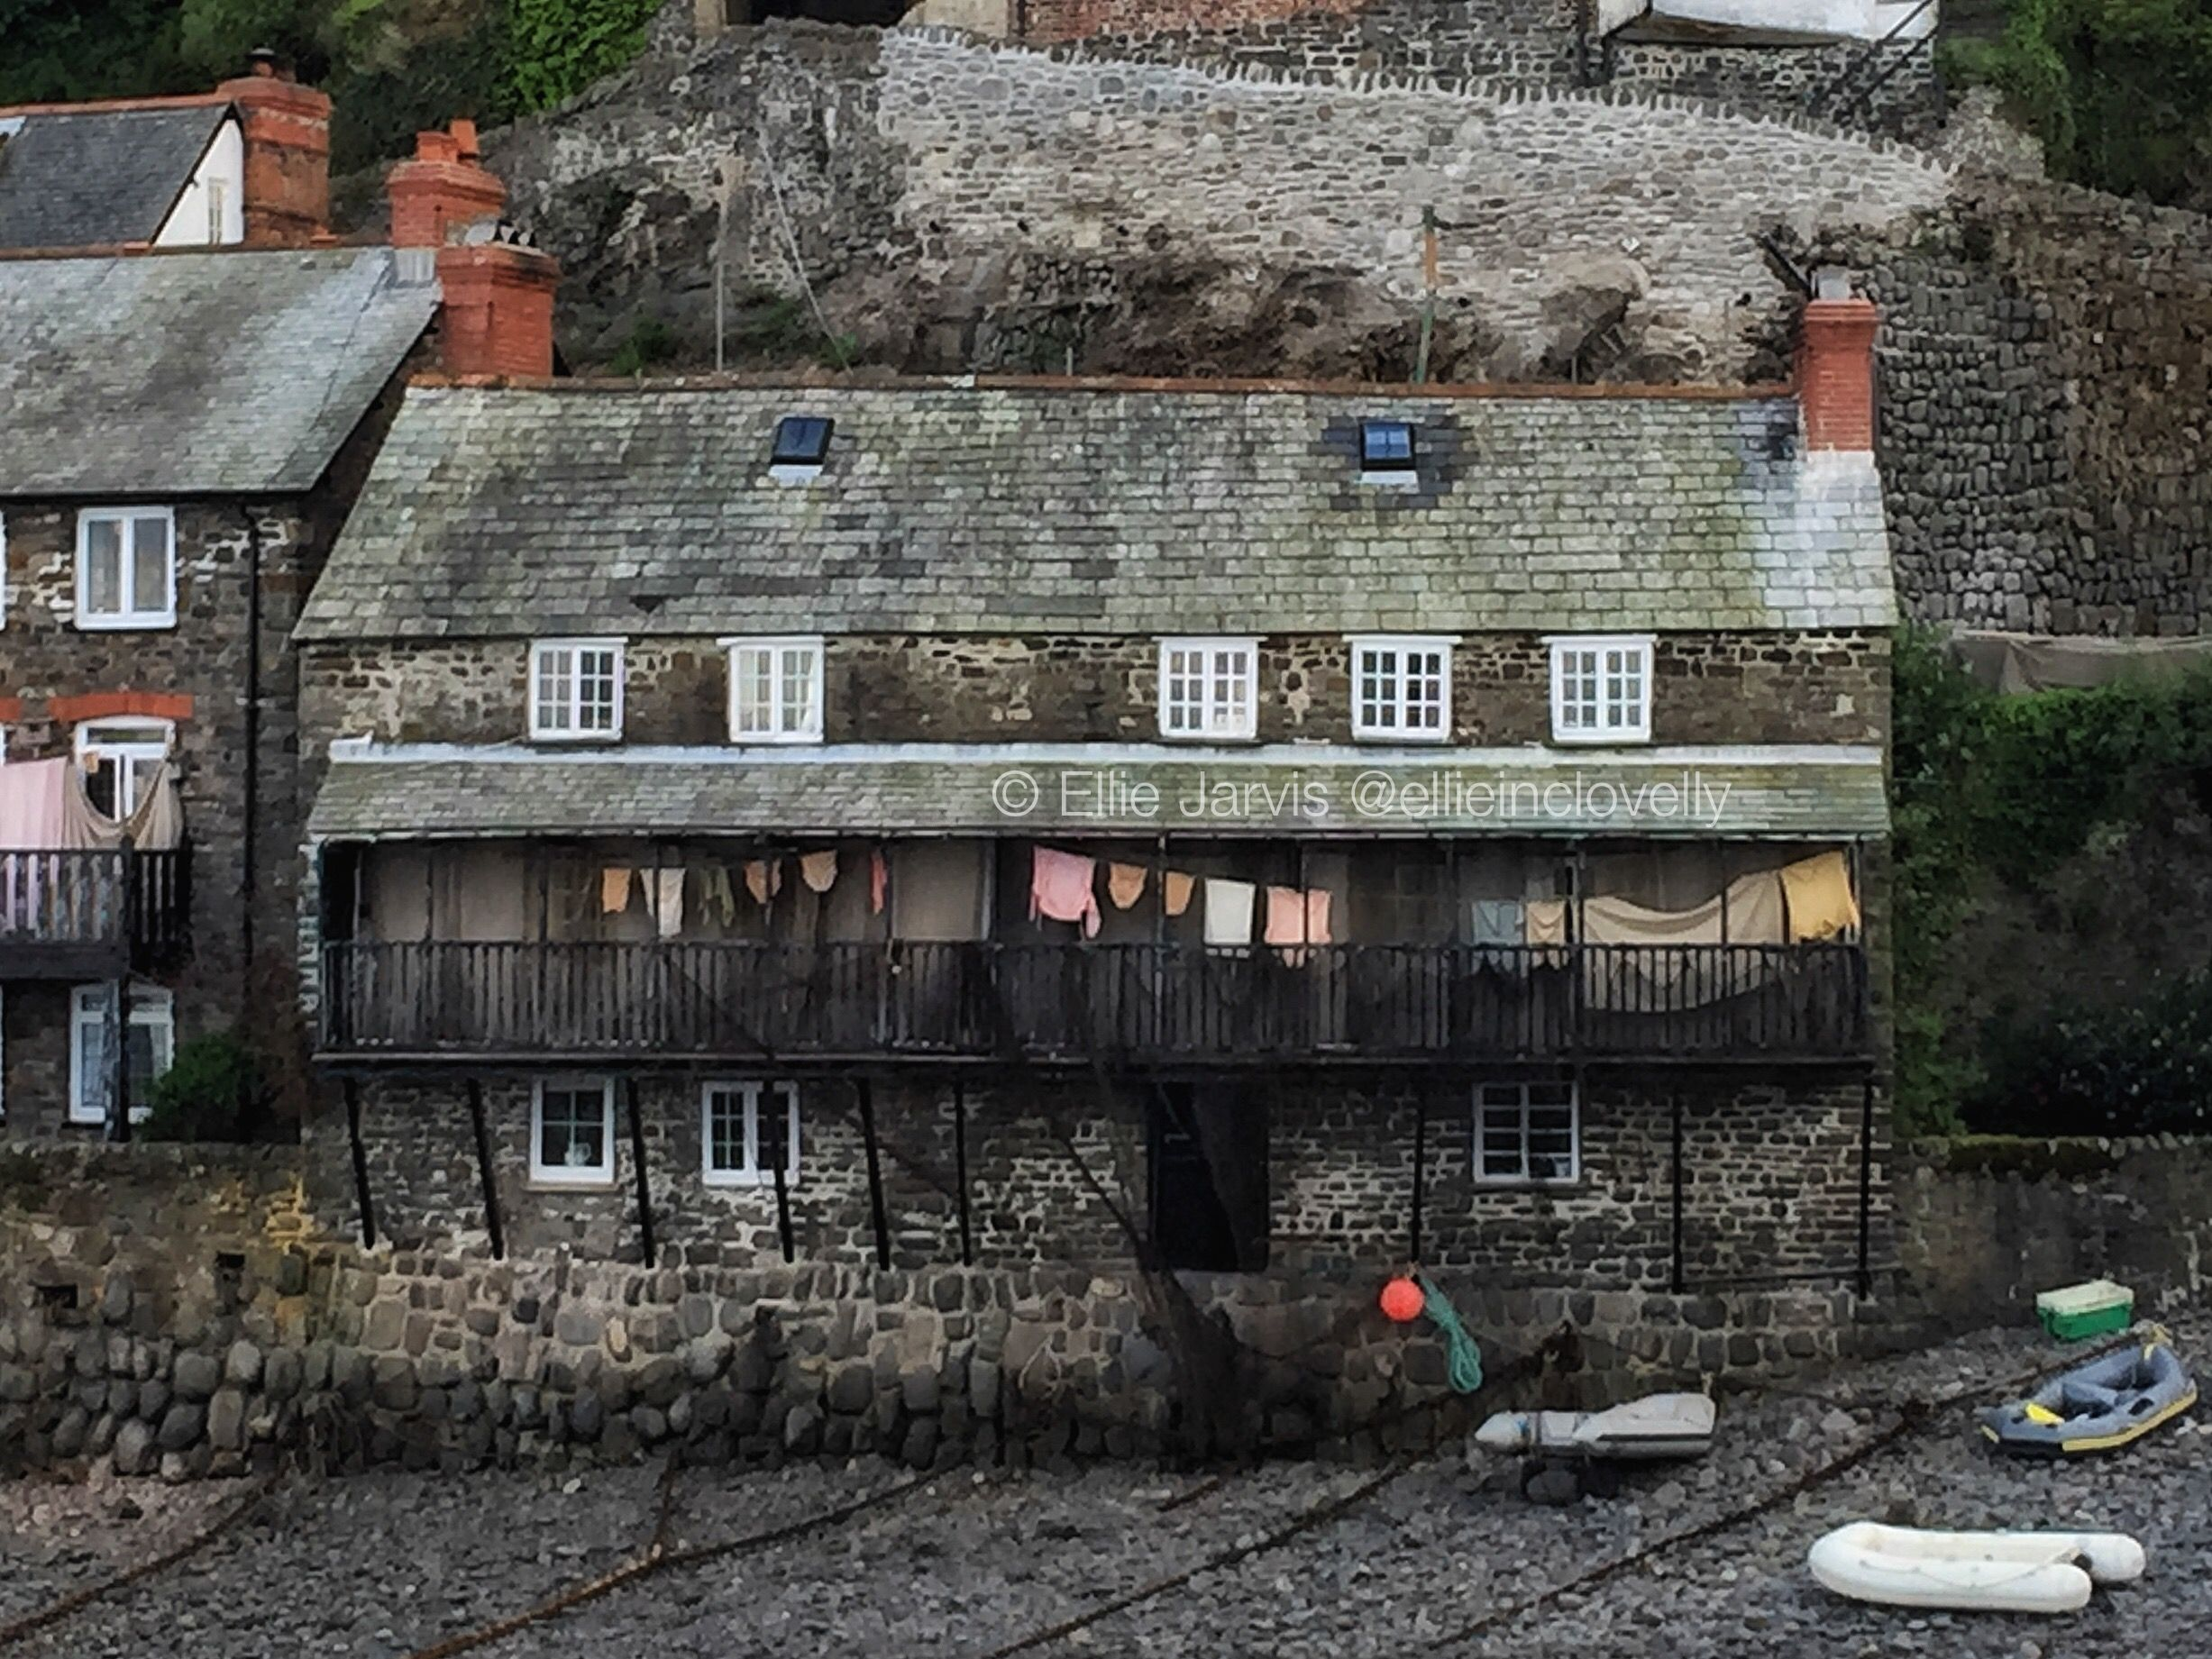 Home Sweet 1940s Home! | Filming The Guernsey Literary and